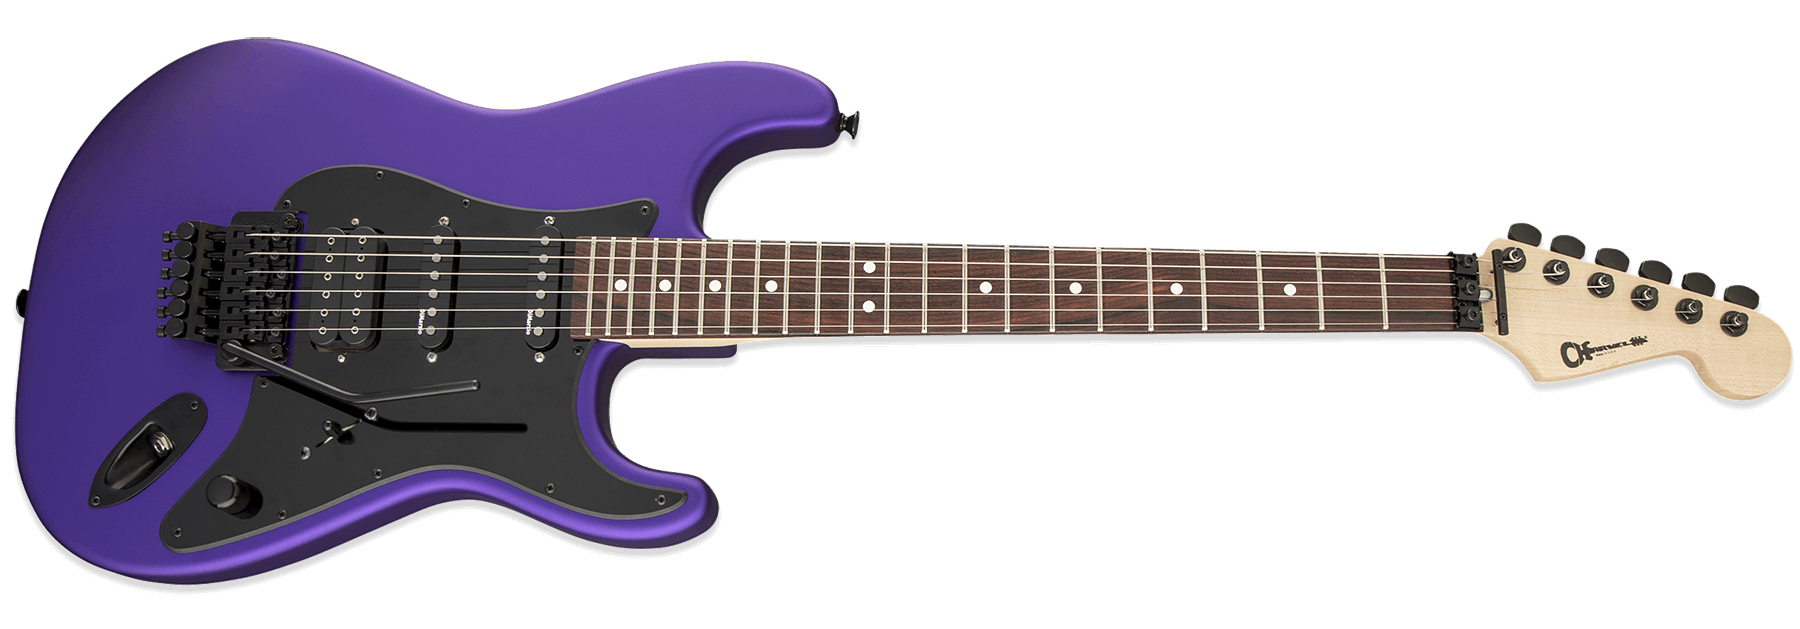 Charvel USA Select So-Cal Style 1 HSS FR Satin Plum